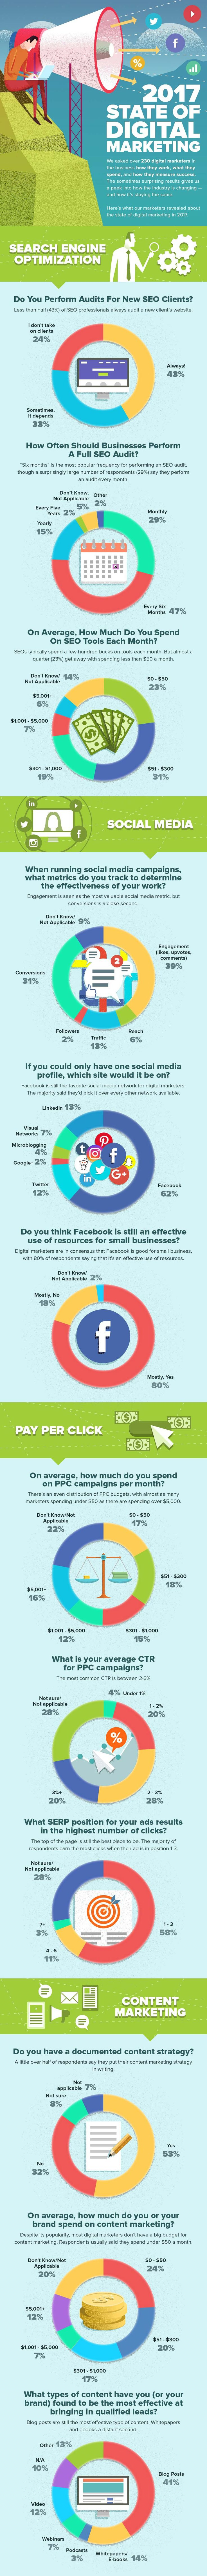 State of Digital Marketing Infographic